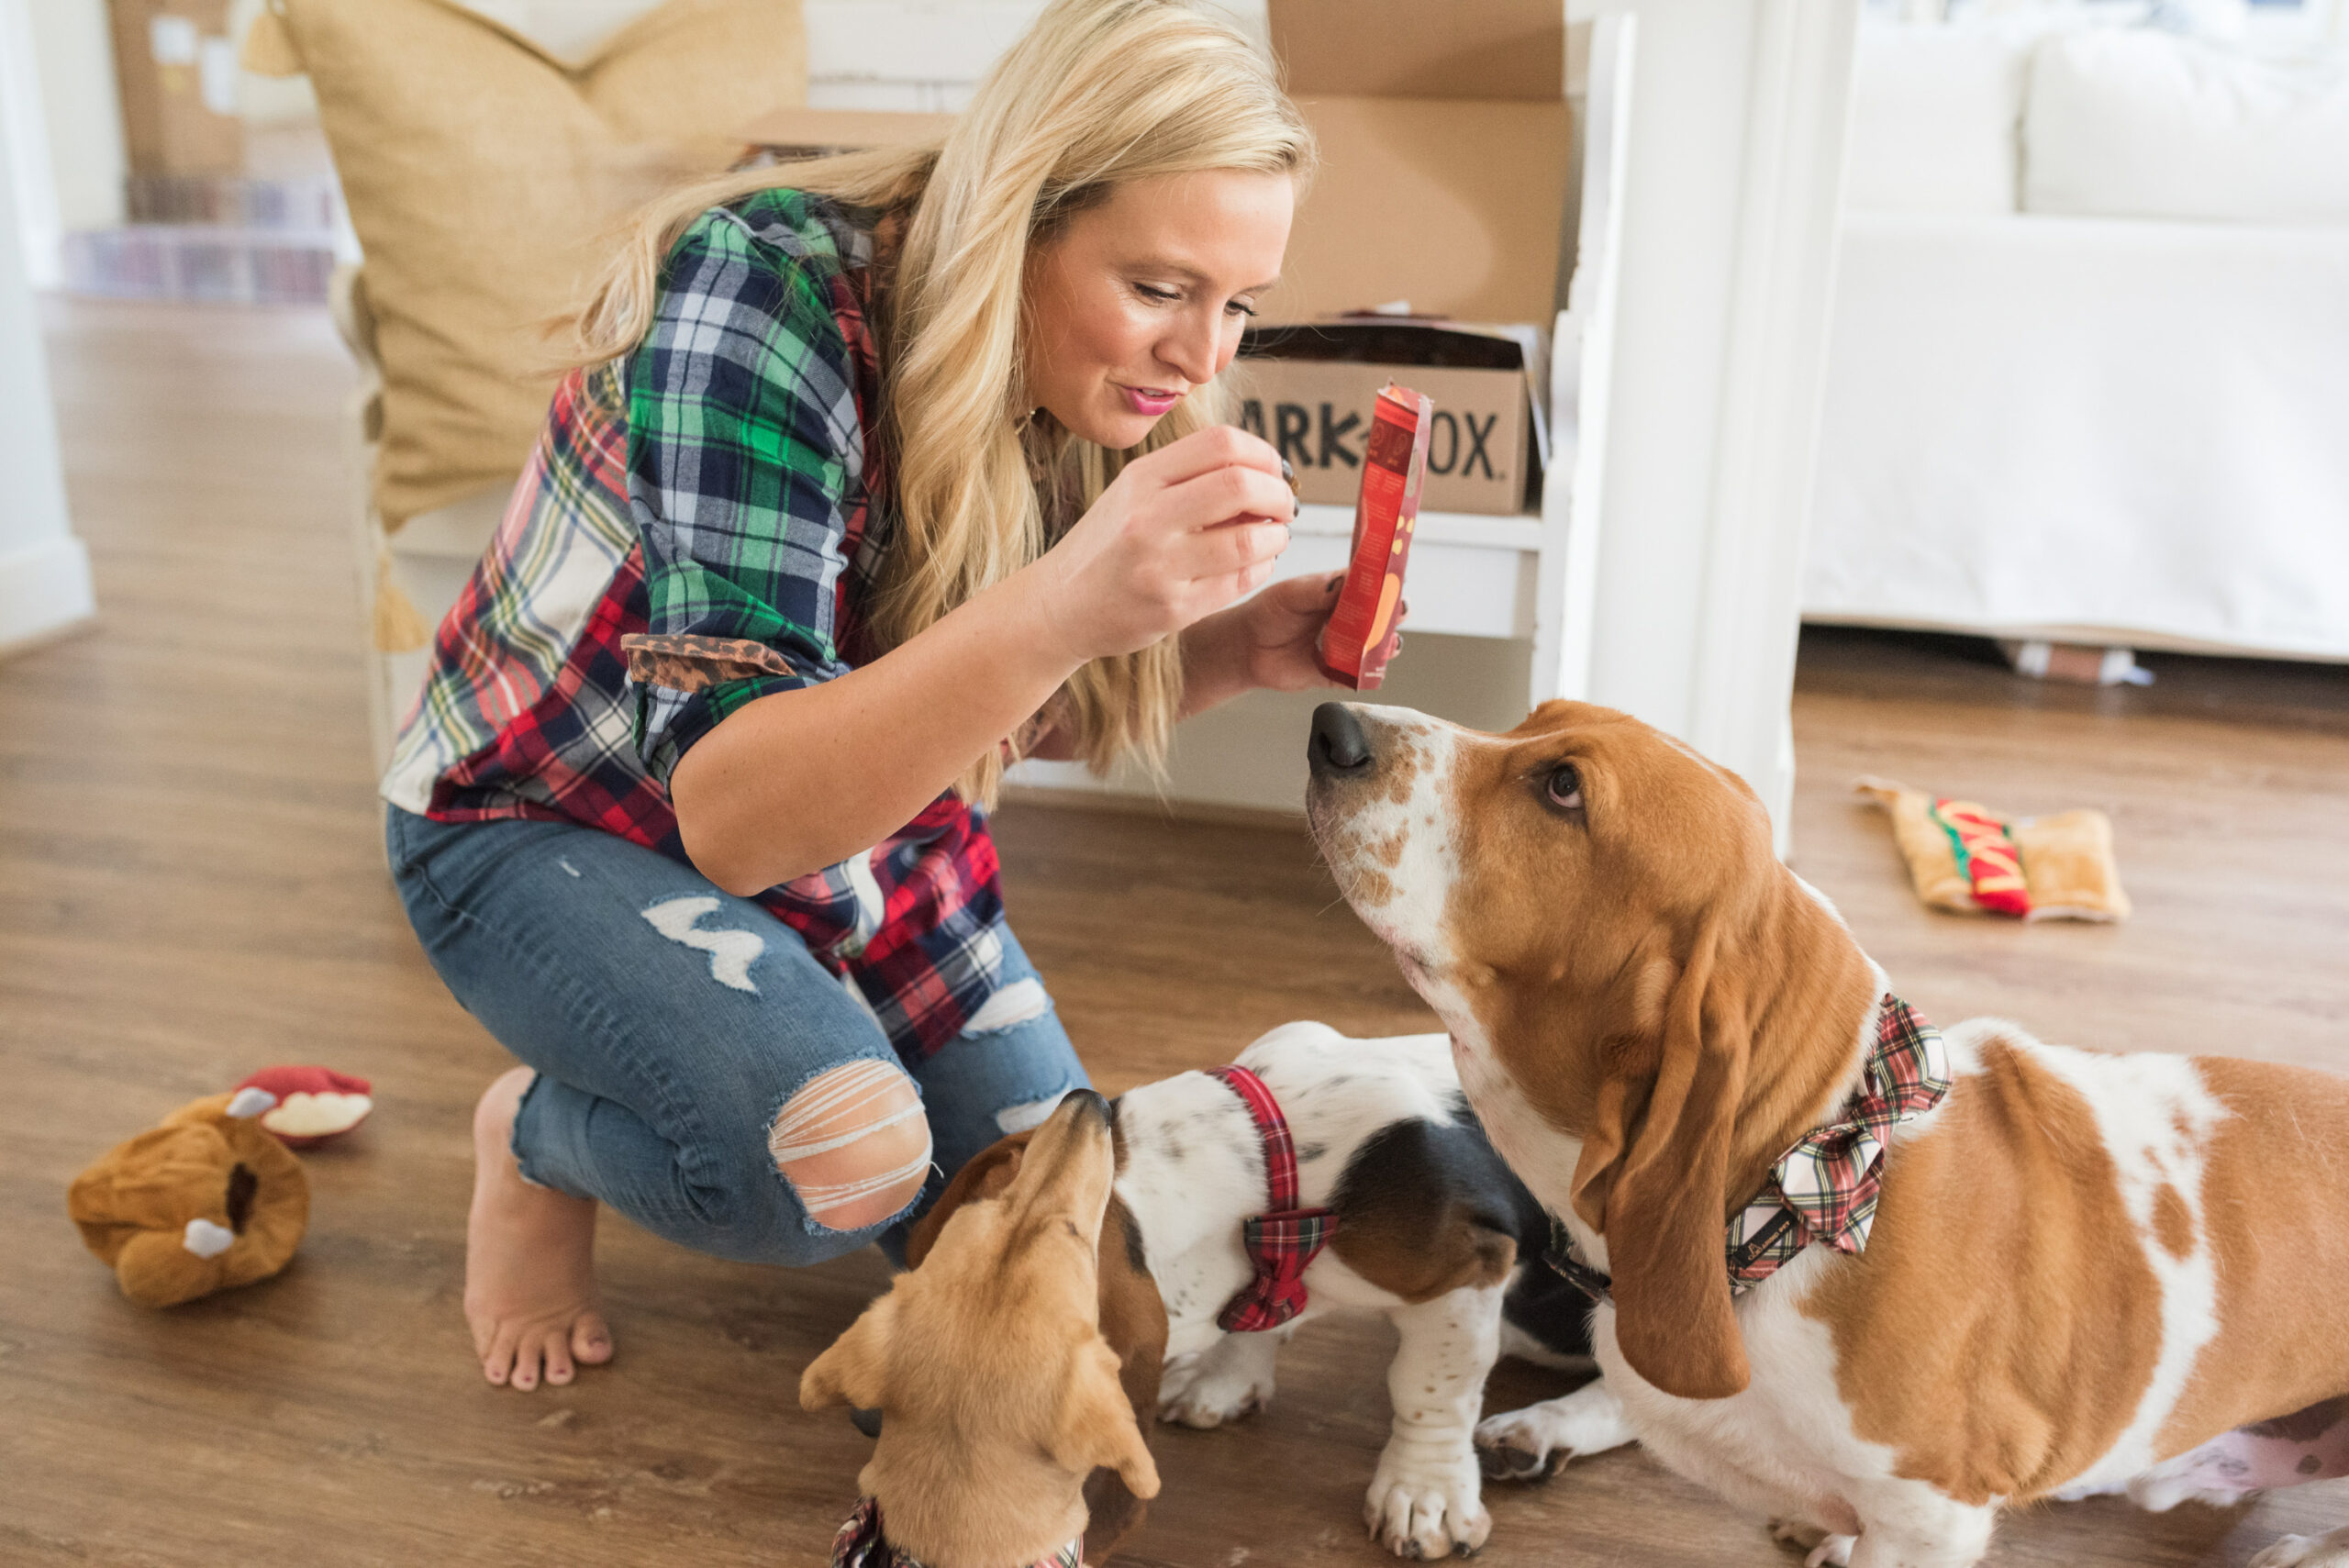 Barkbox Toys by popular Houston lifestyle blog, Fancy Ashley: image of a woman giving her dogs some Barkbox treats.